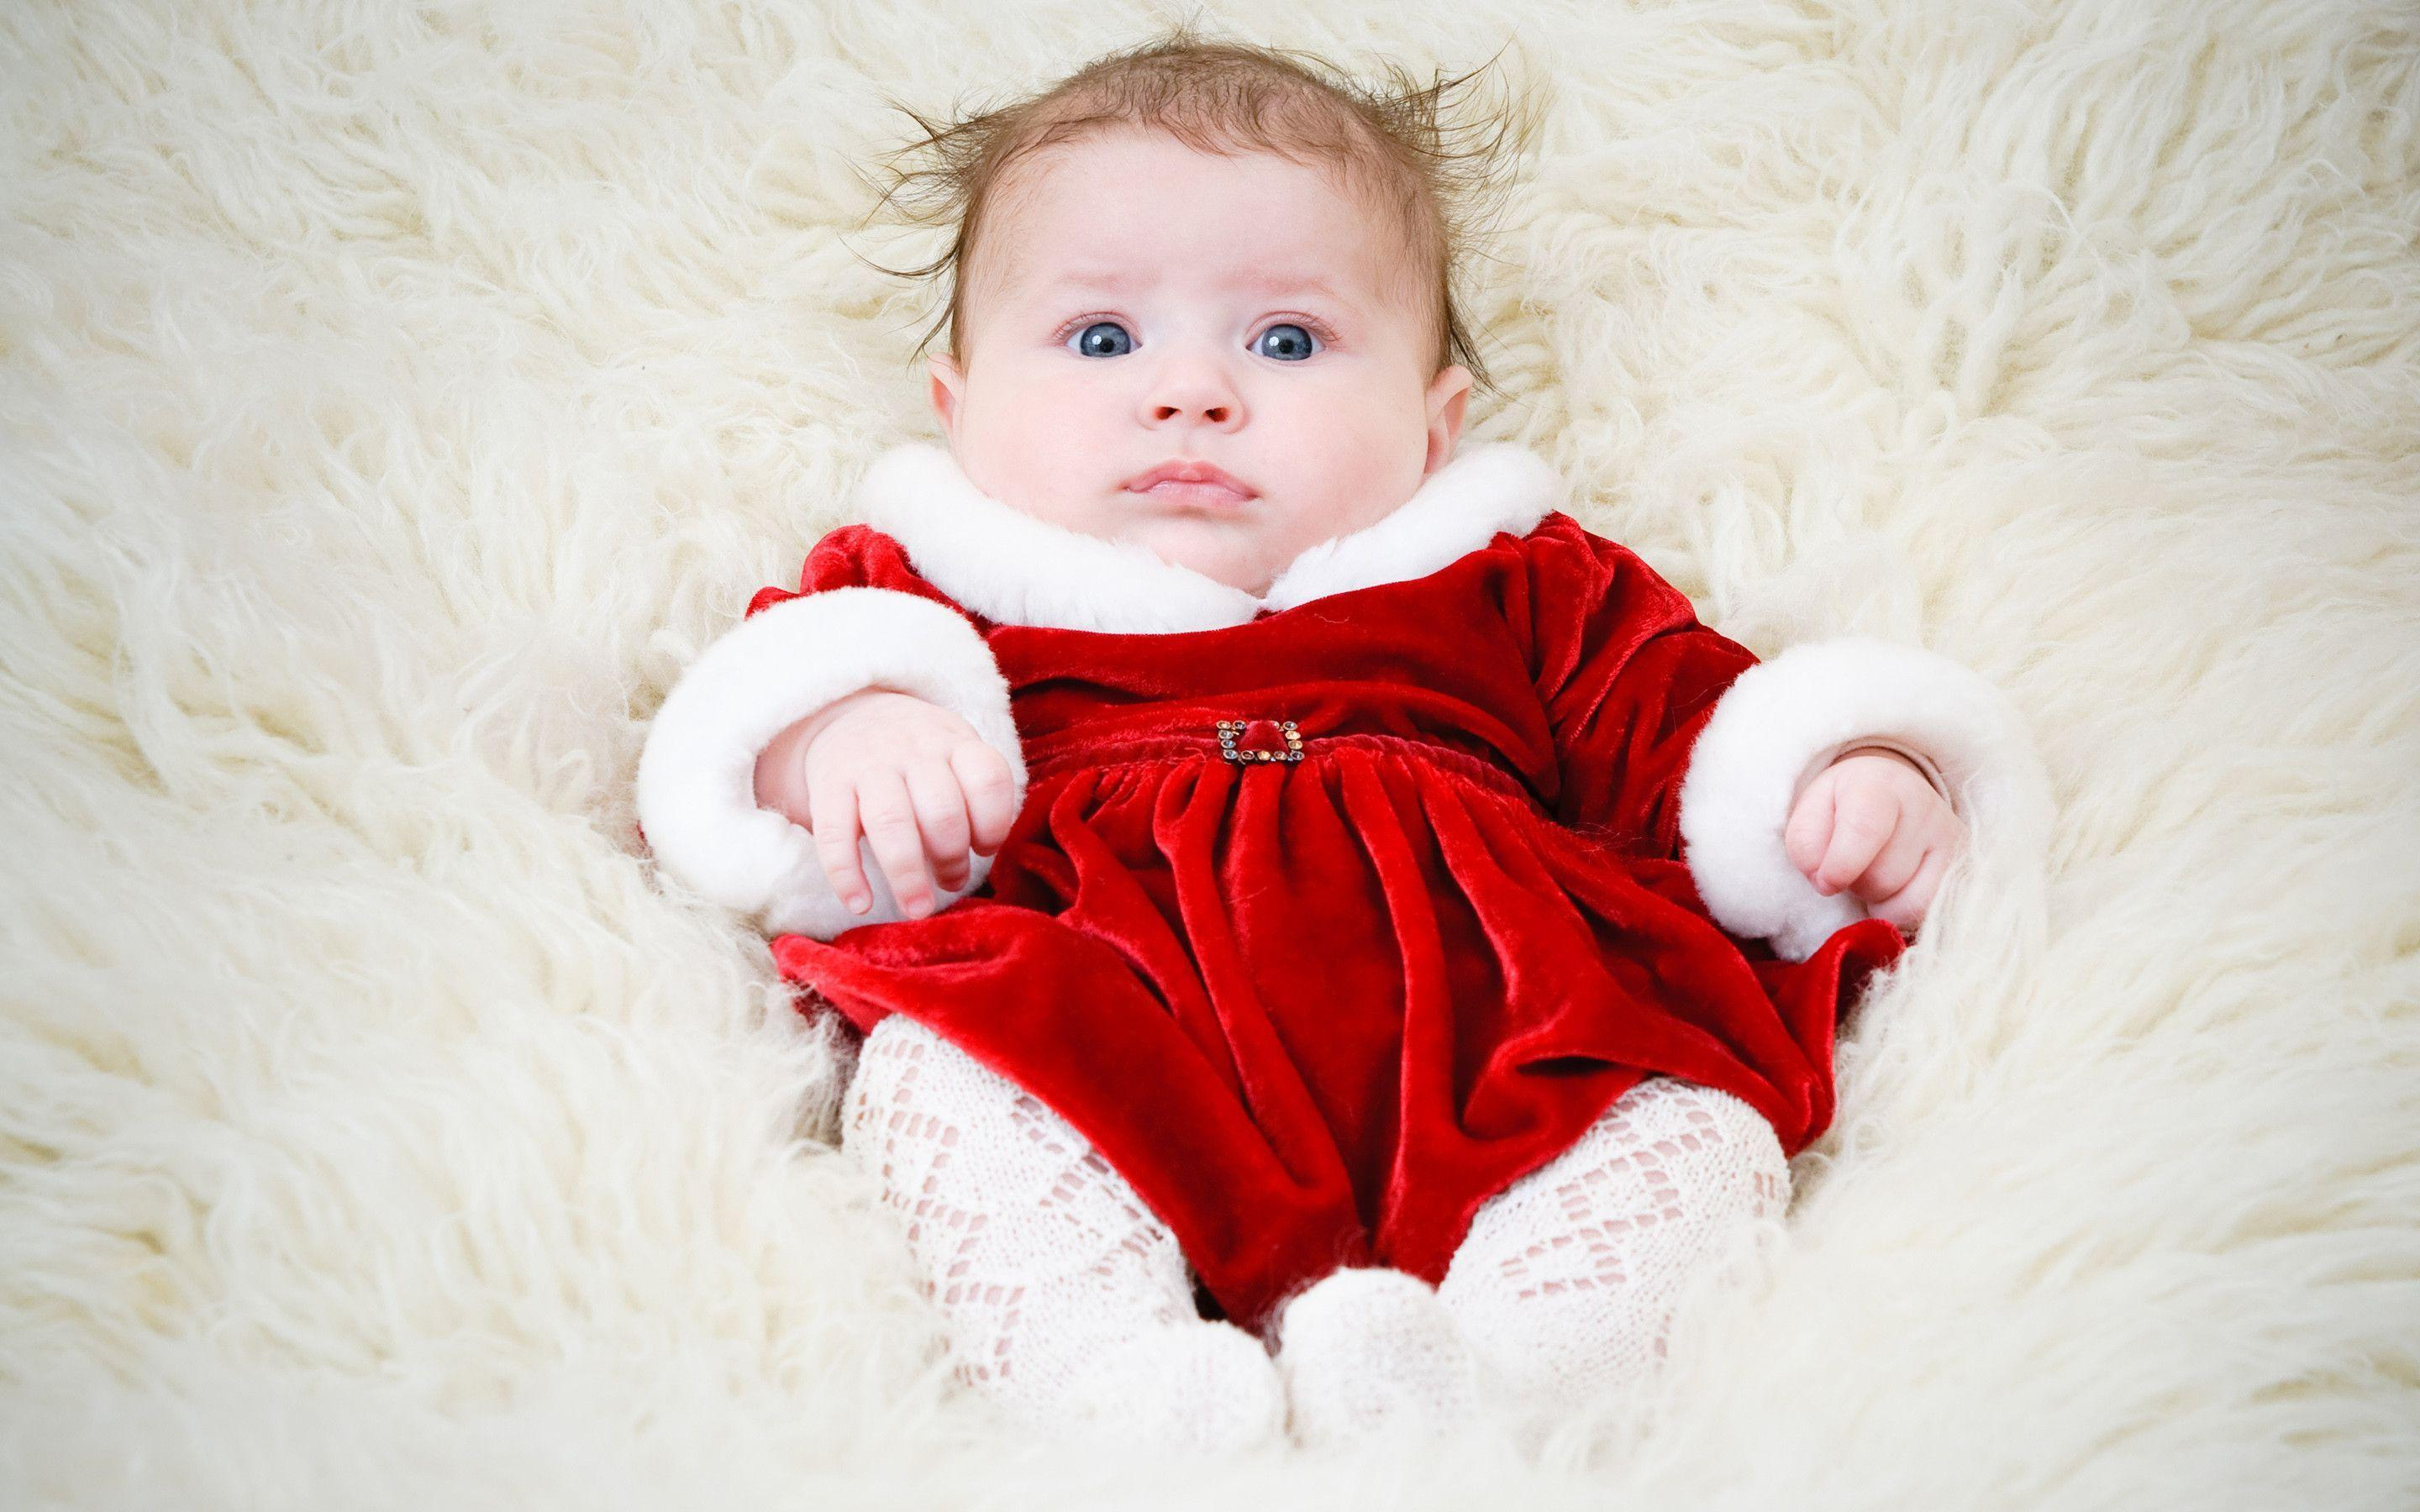 Baby wallpapers wallpaper cave cute baby wallpapers cute babies pictures cute baby girl voltagebd Gallery